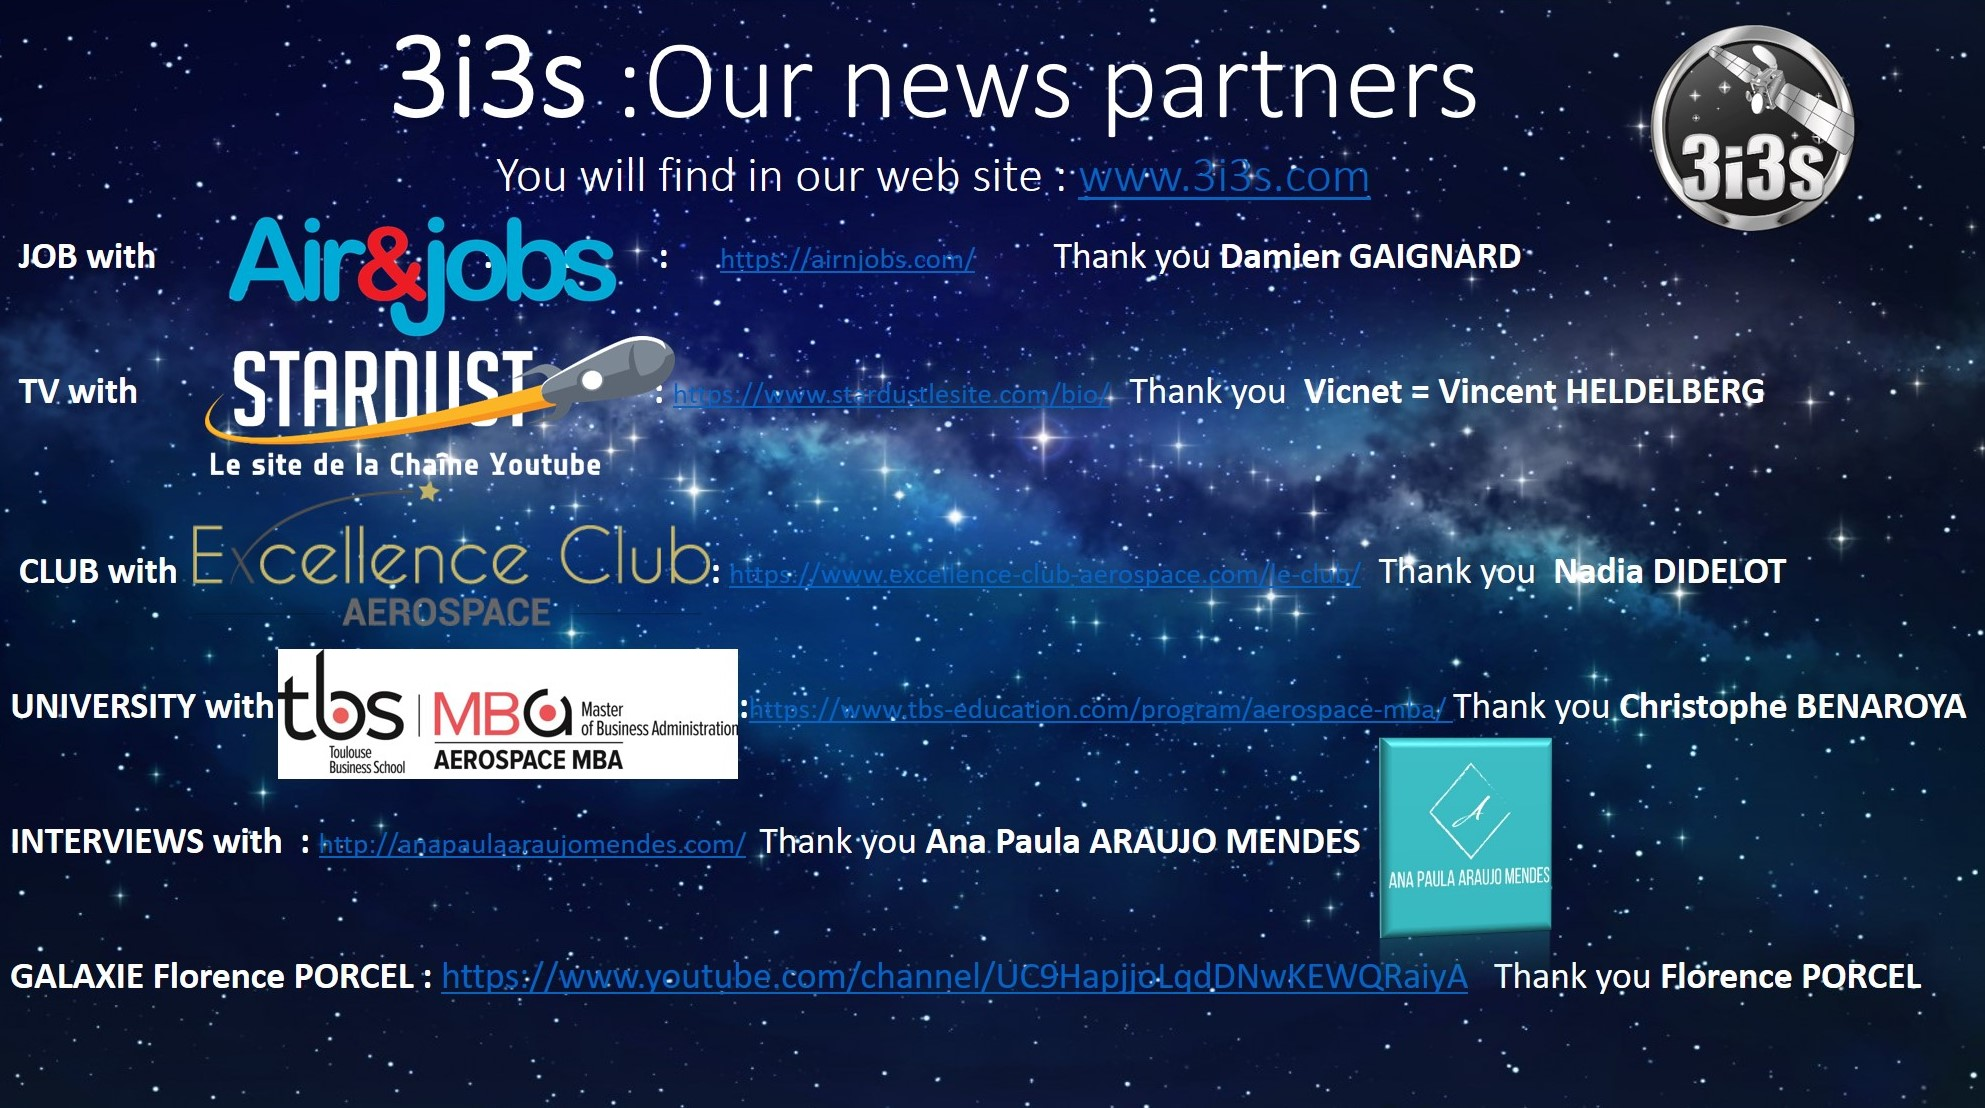 3i3s Our news Partners  May 2020